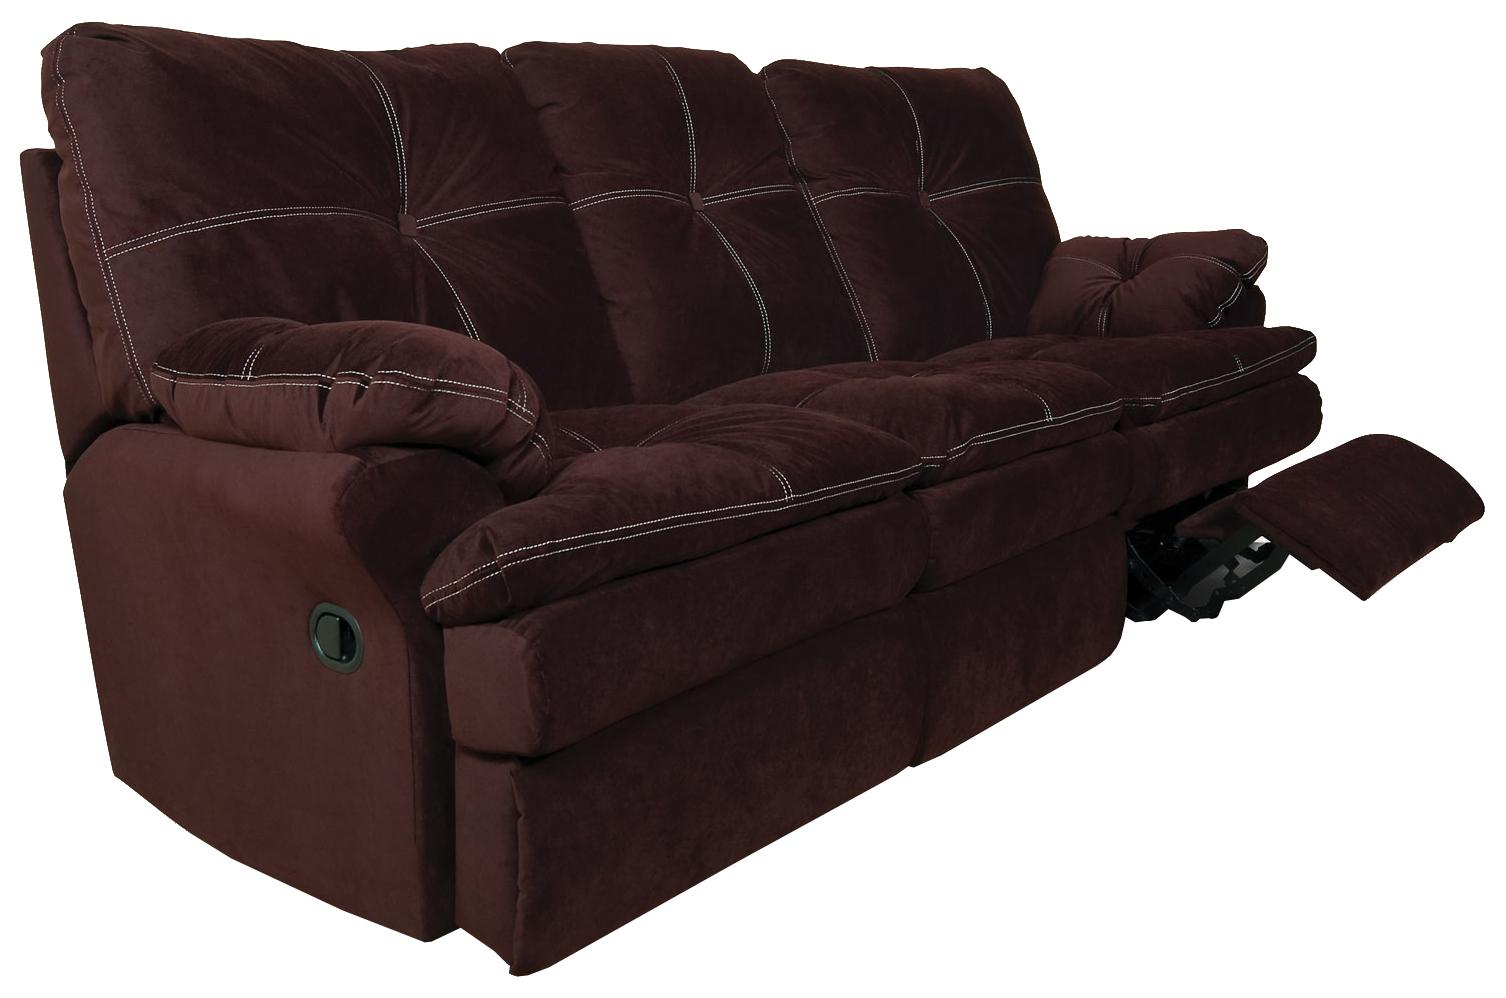 England Miranda and Lloyd  Double Reclining Sofa with Power - Item Number: 3011 F Power